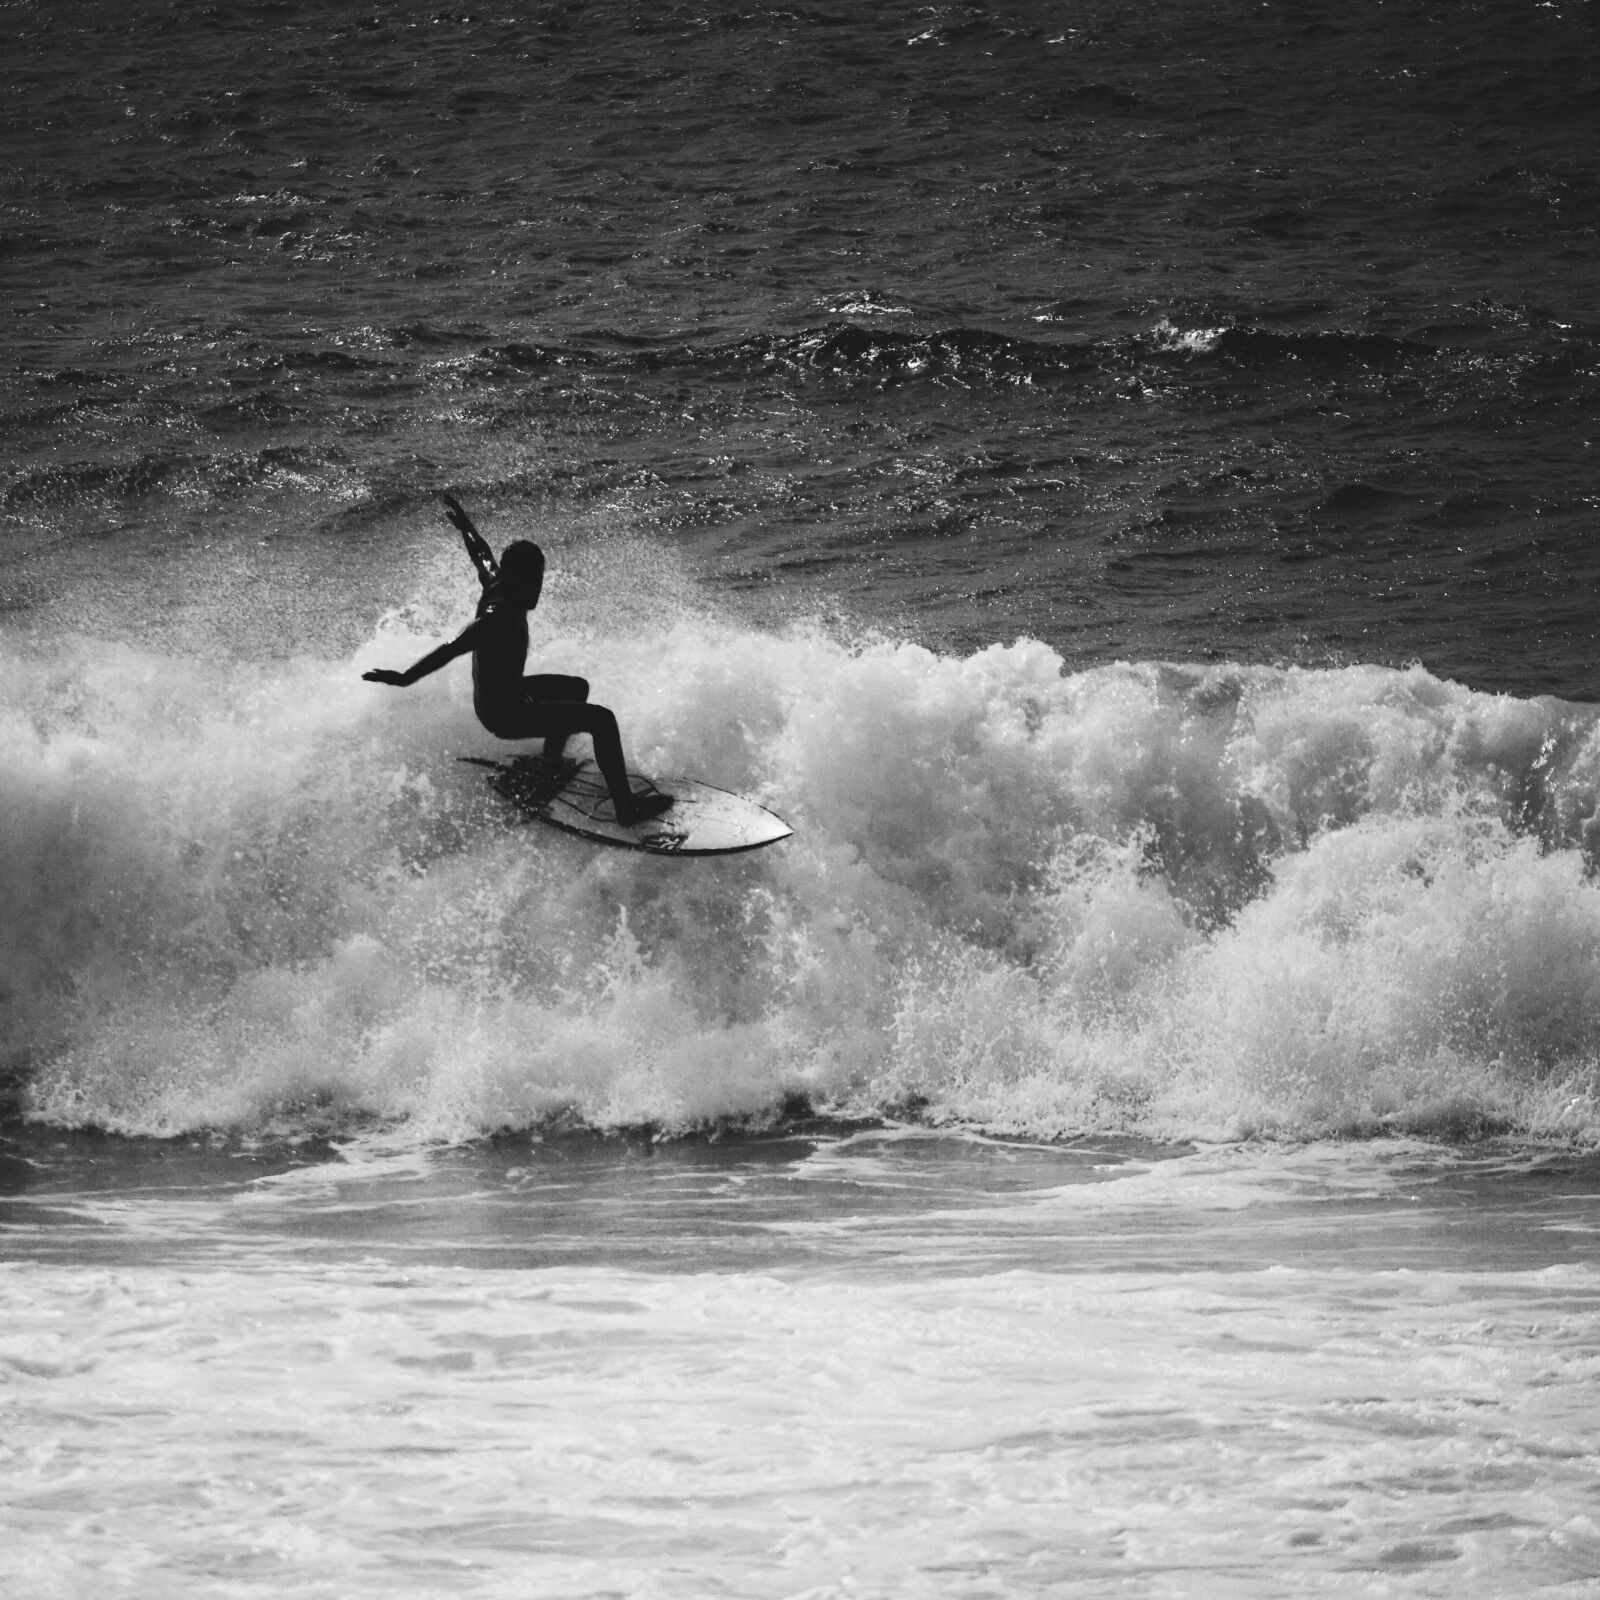 """Canon EOS 7D sample photo. """"Surf whitewash, foam, water"""" photography"""